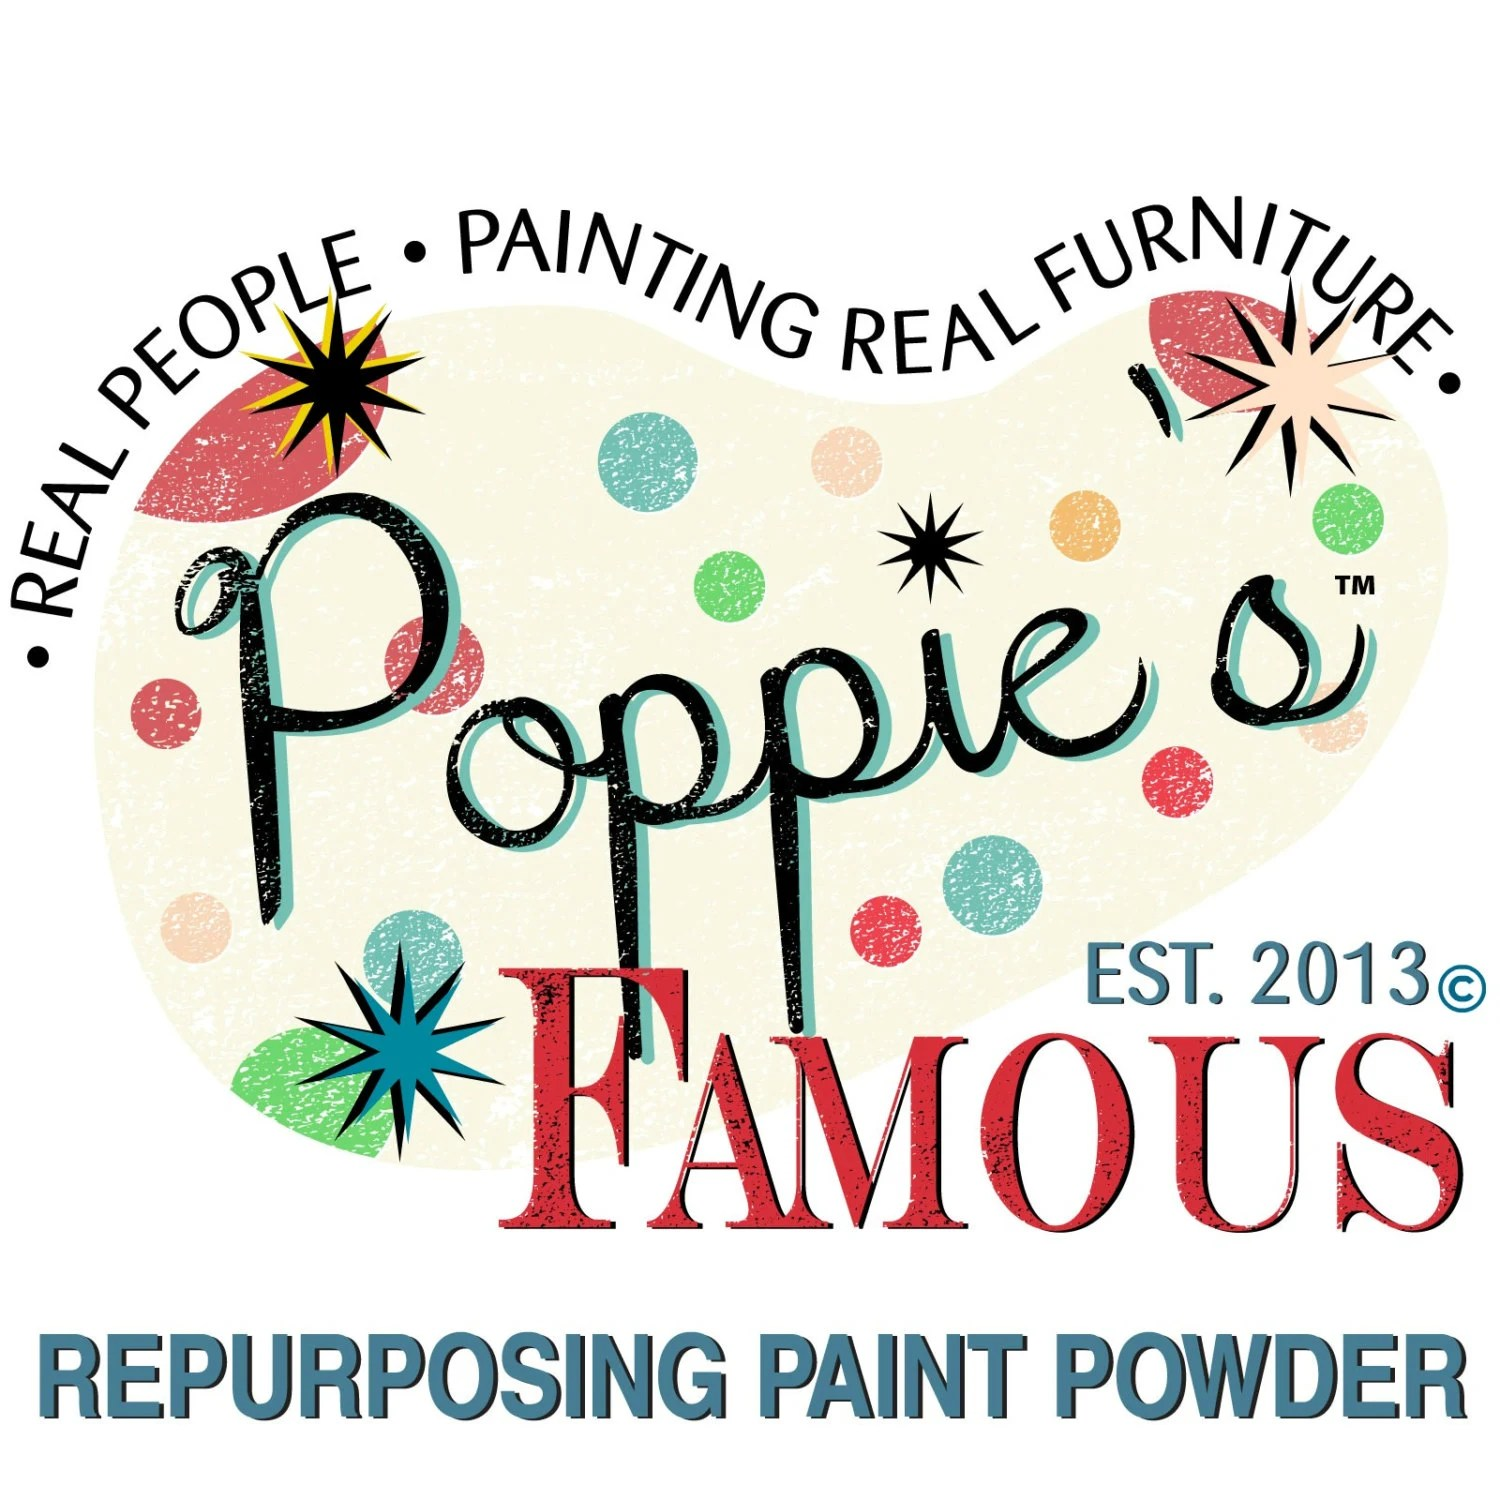 Items Similar To Poppie's Famous Repurposing Paint Powder